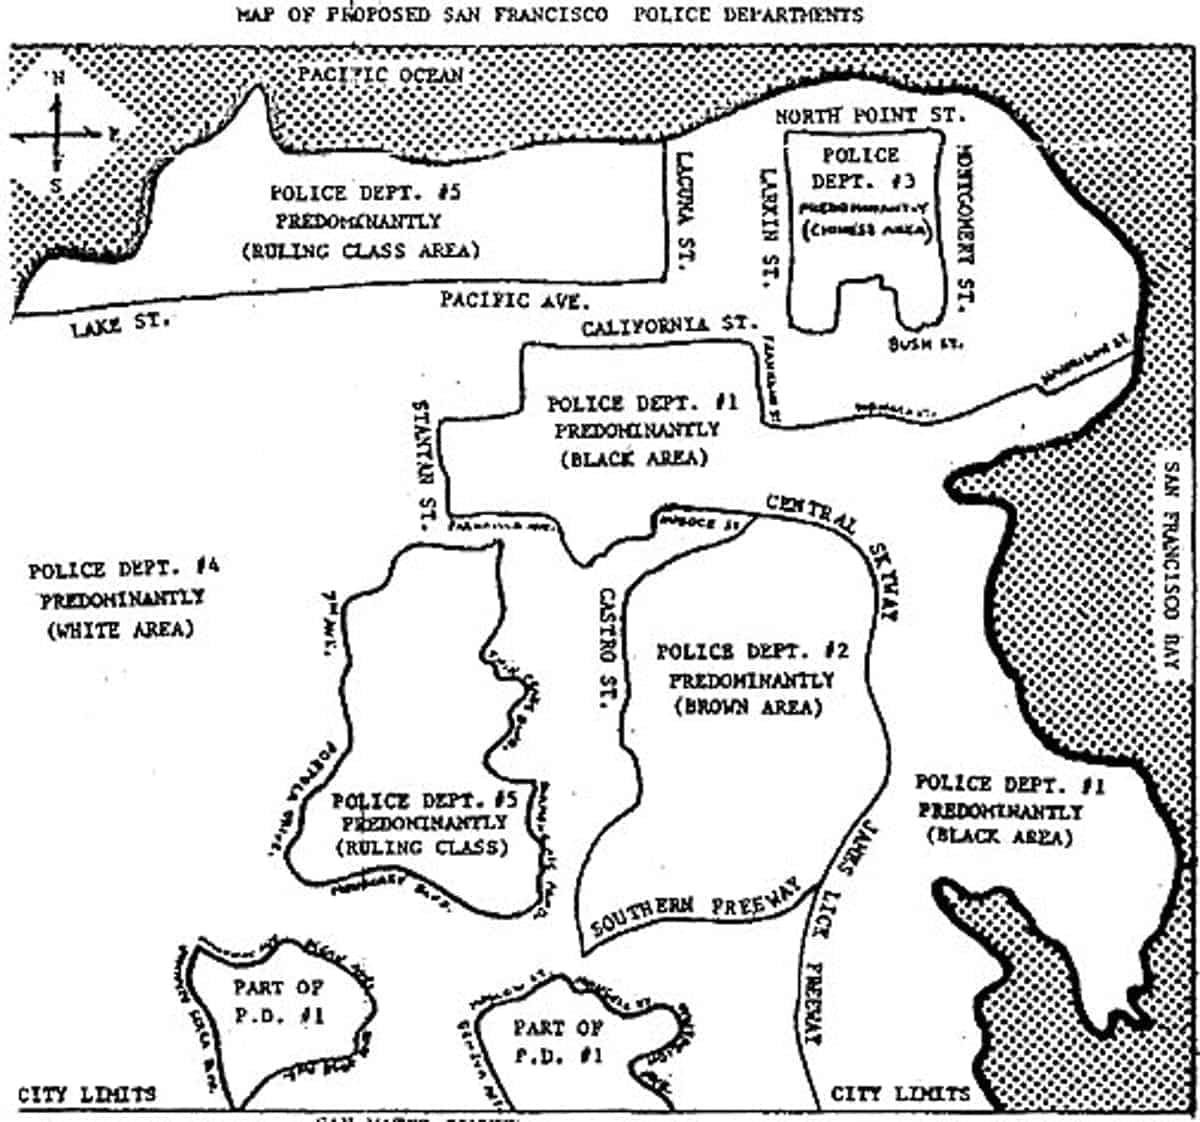 The Black Panthers' proposed police districts for the city of San Francisco, created in 1966 or 1967. Ccarolson/FoundSF, CC BY-SA